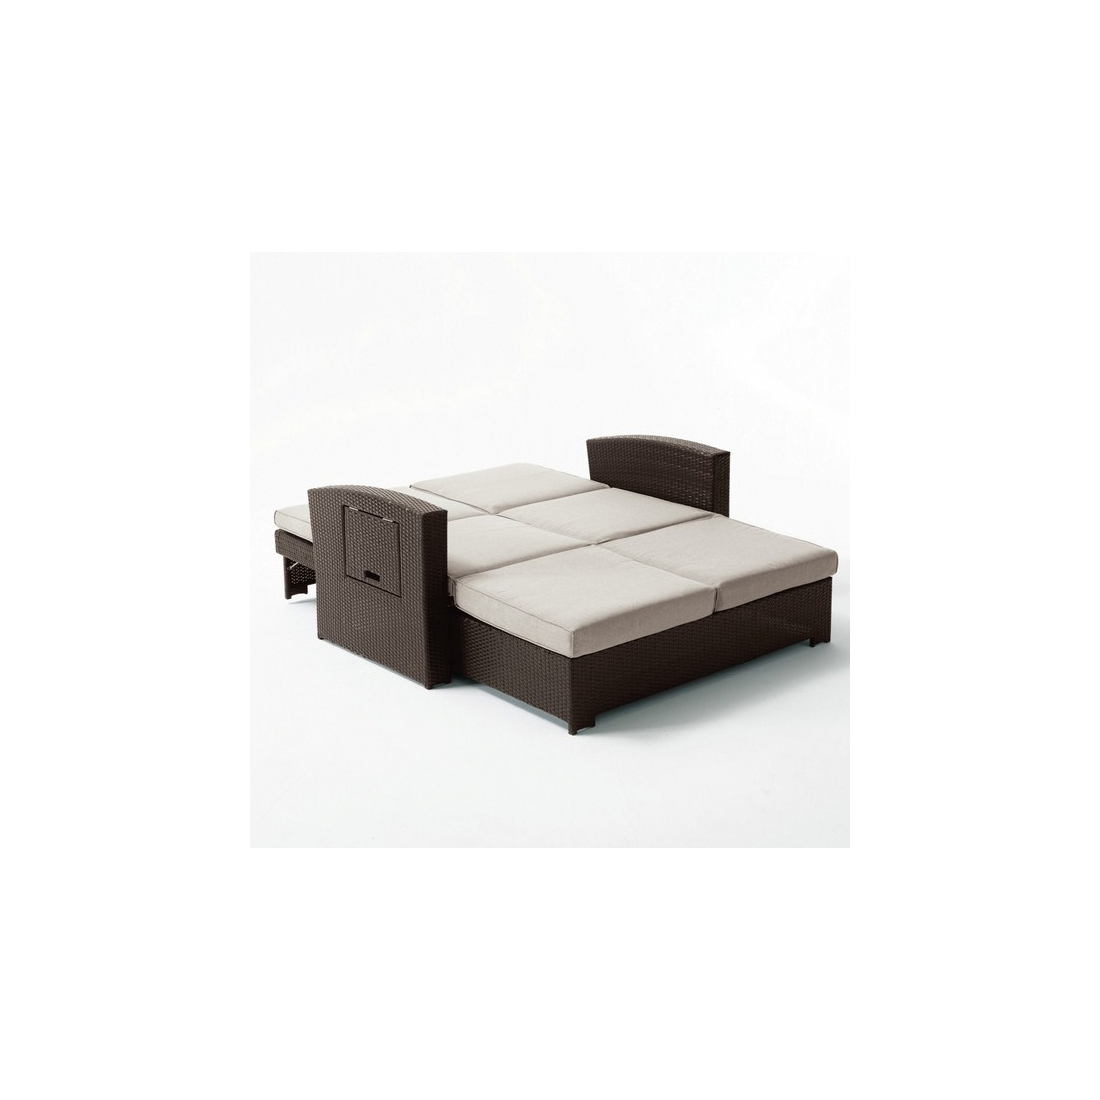 Canap lit rd italia minas canap s design rd italia for Canape lit but fr